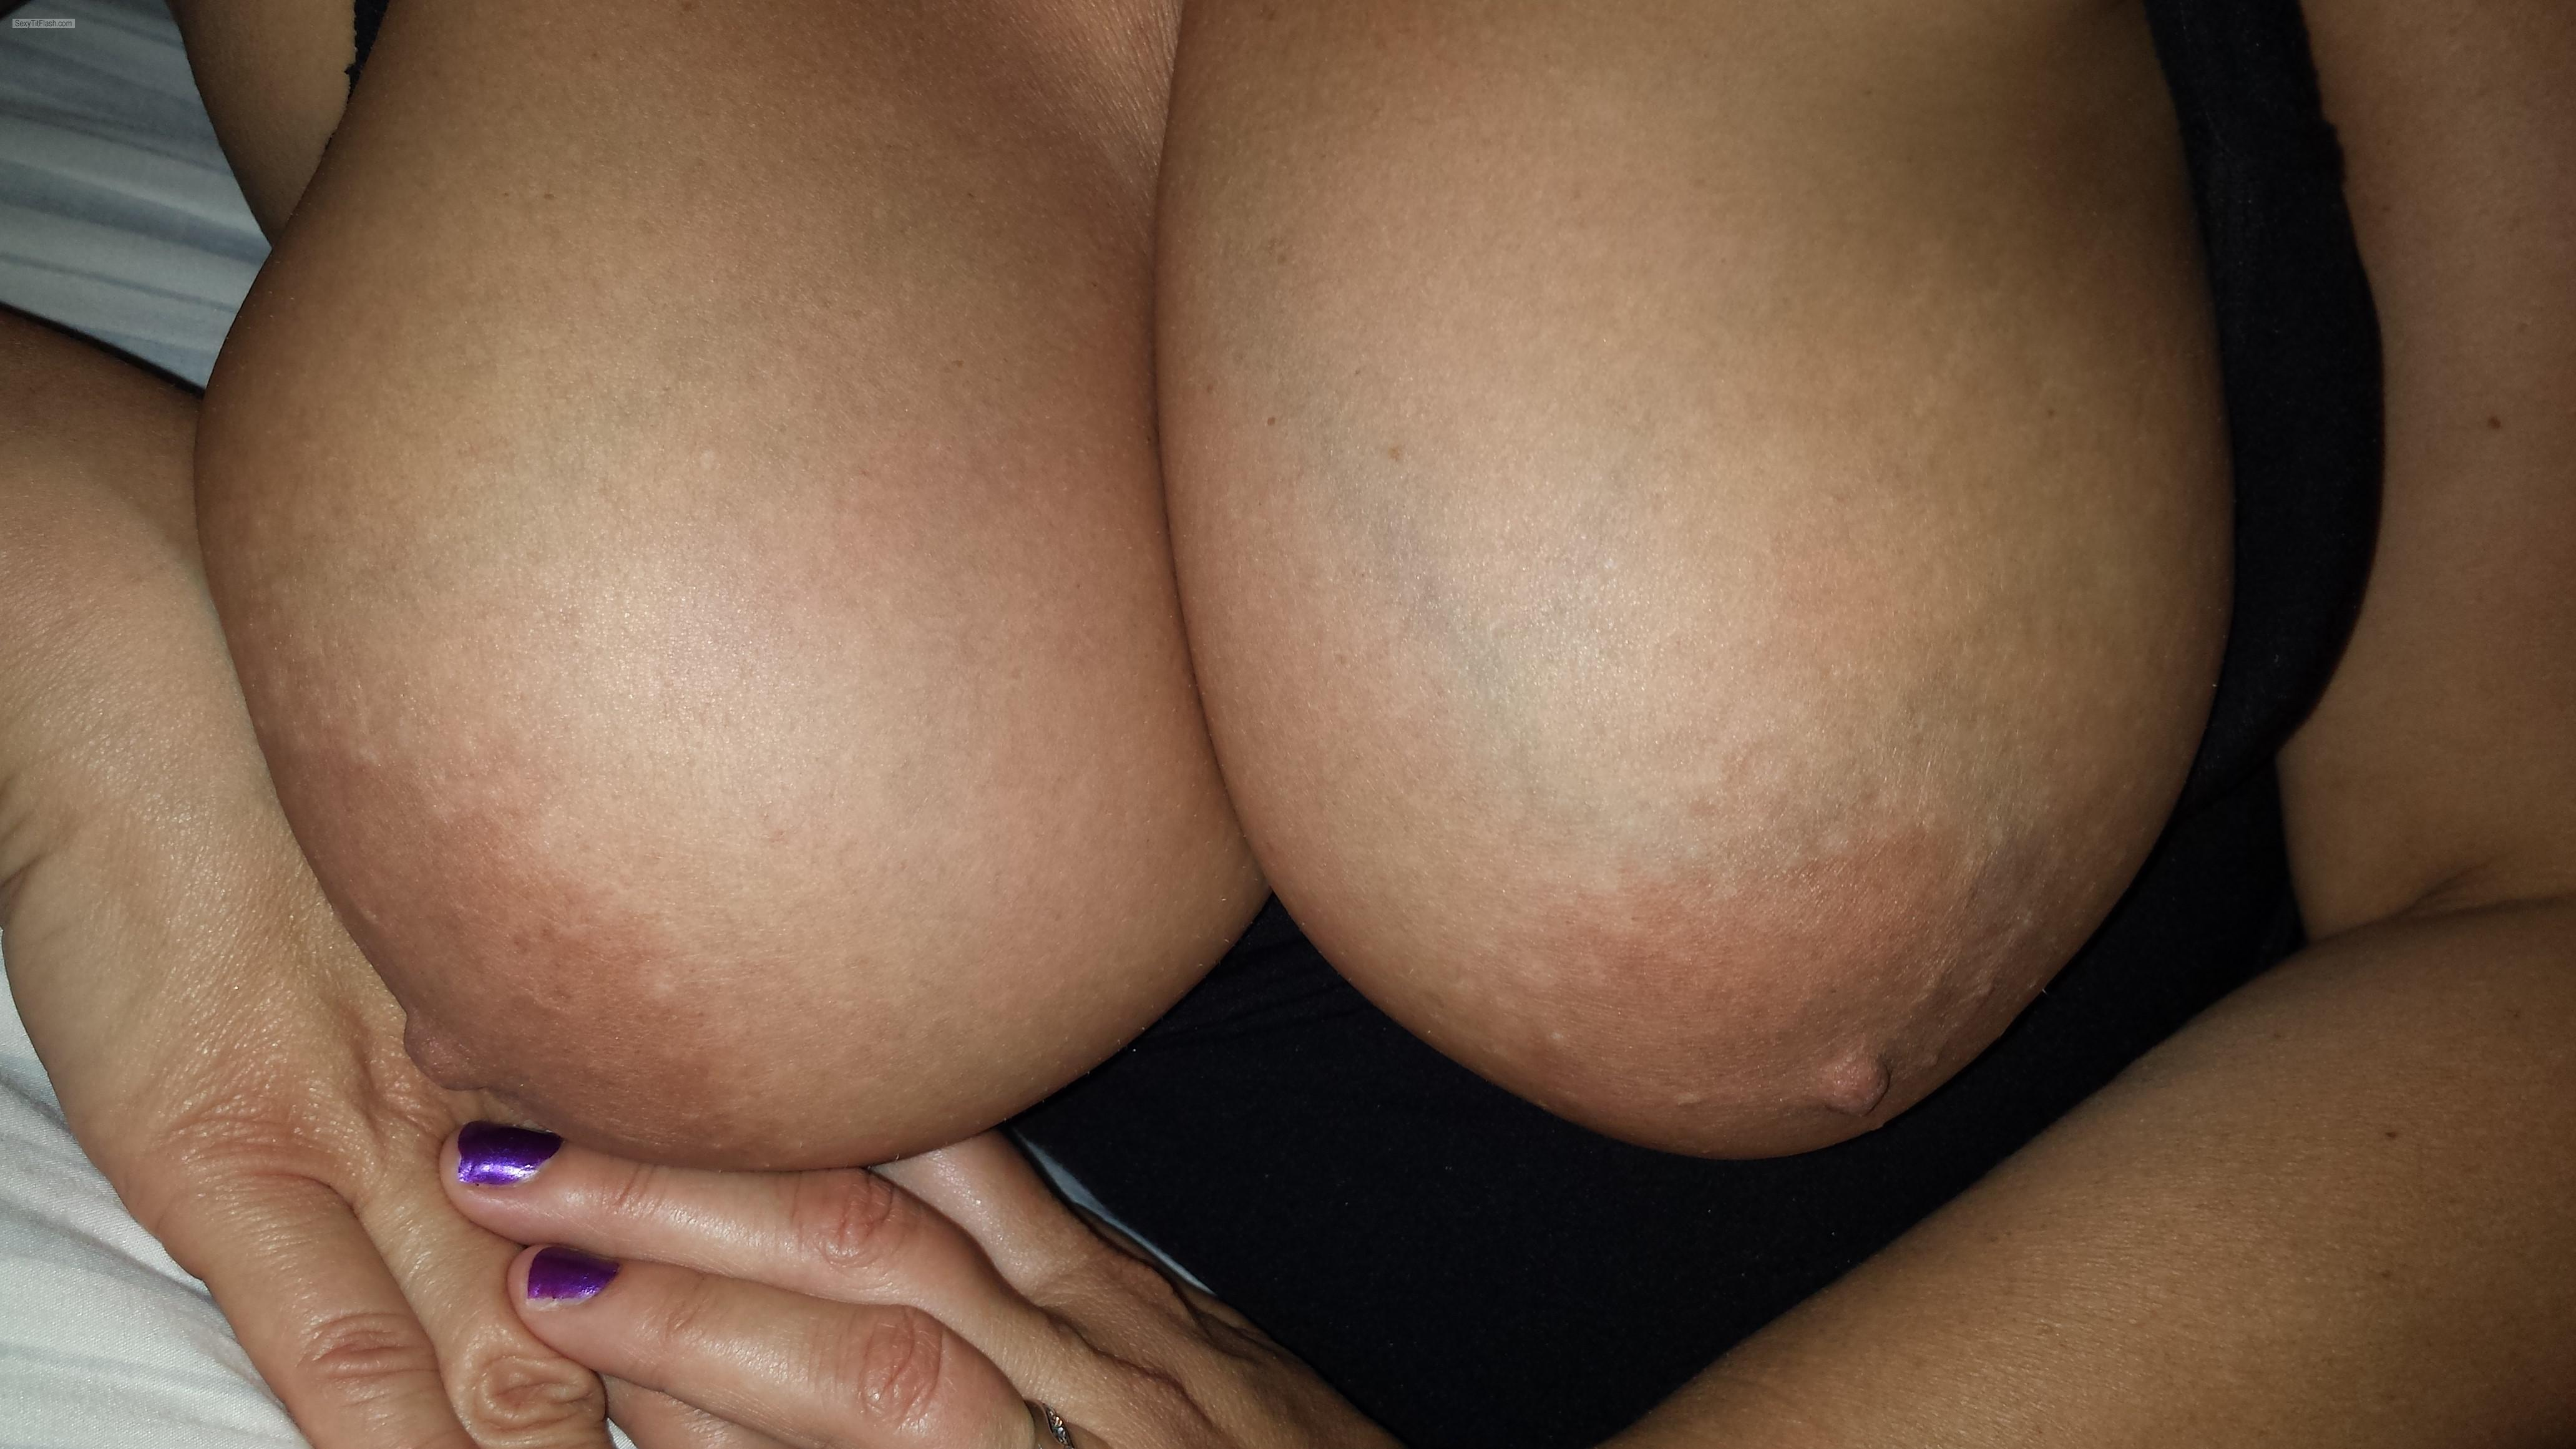 My Very big Tits Topless 38dddyeah